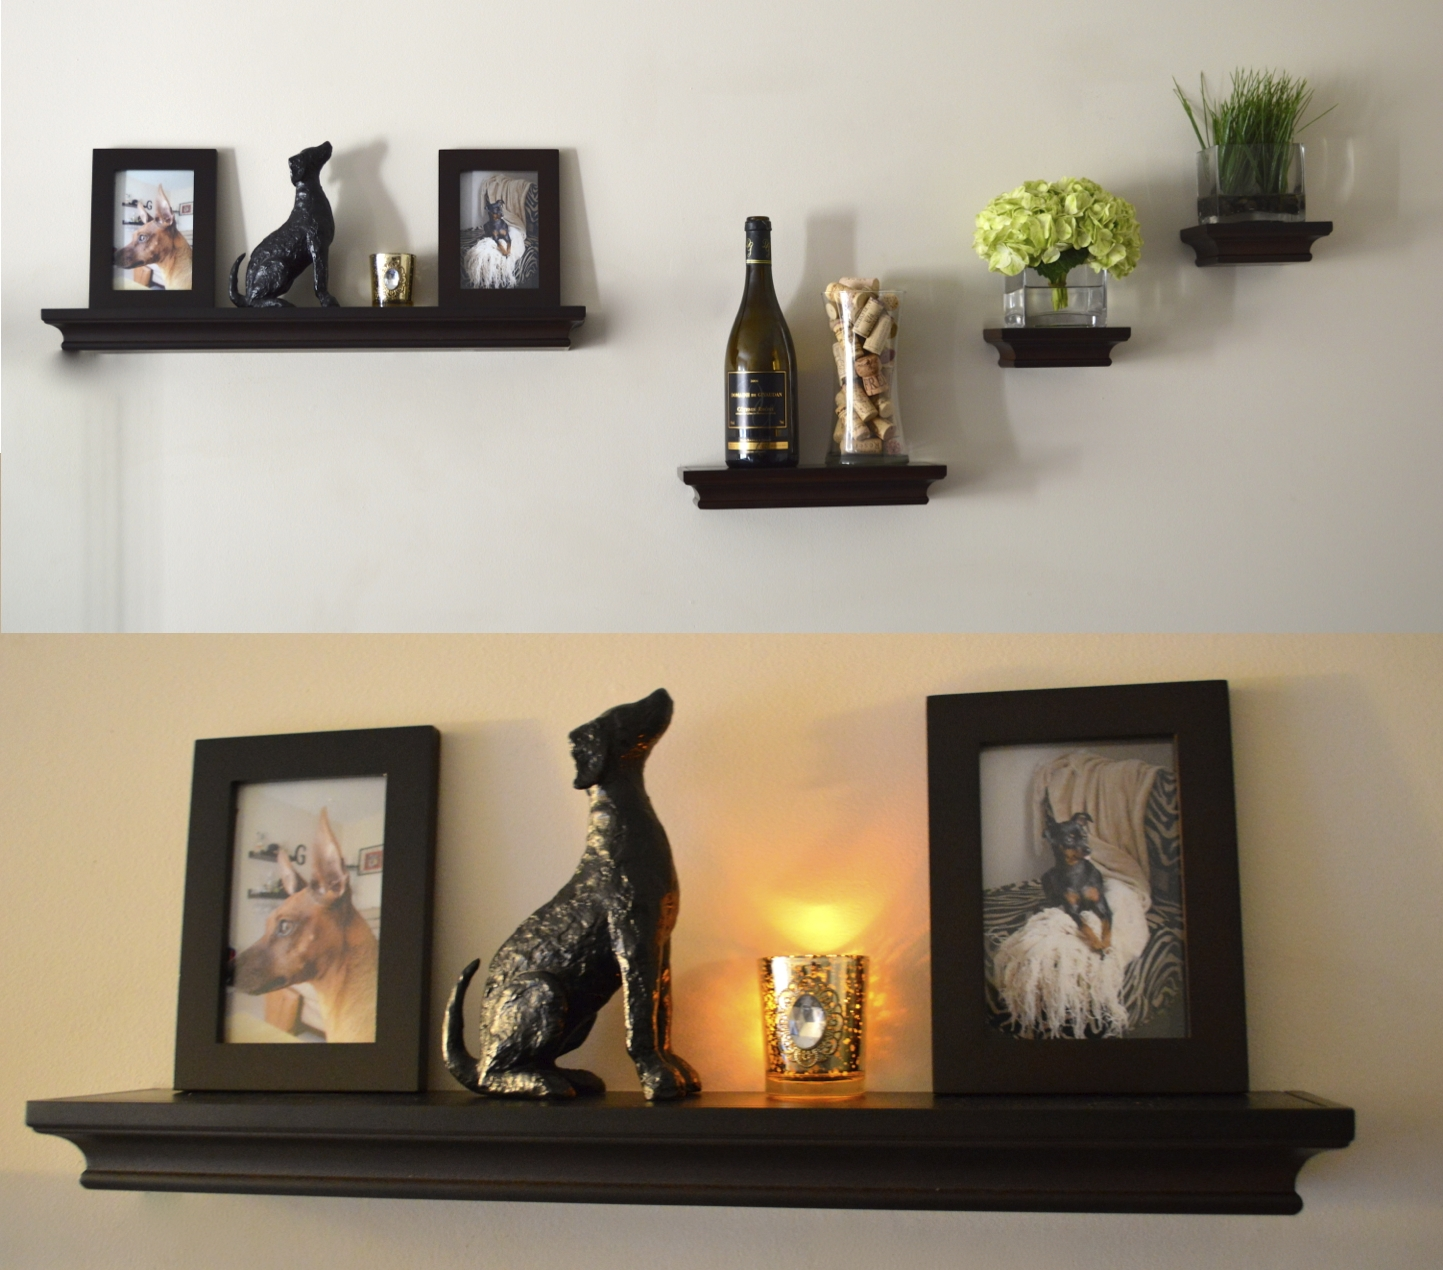 living room black wooden floating shelves with molding stone dog wall decor silver steel lamp light white glass bottle clear small plant pots ture frames decorations computer desk